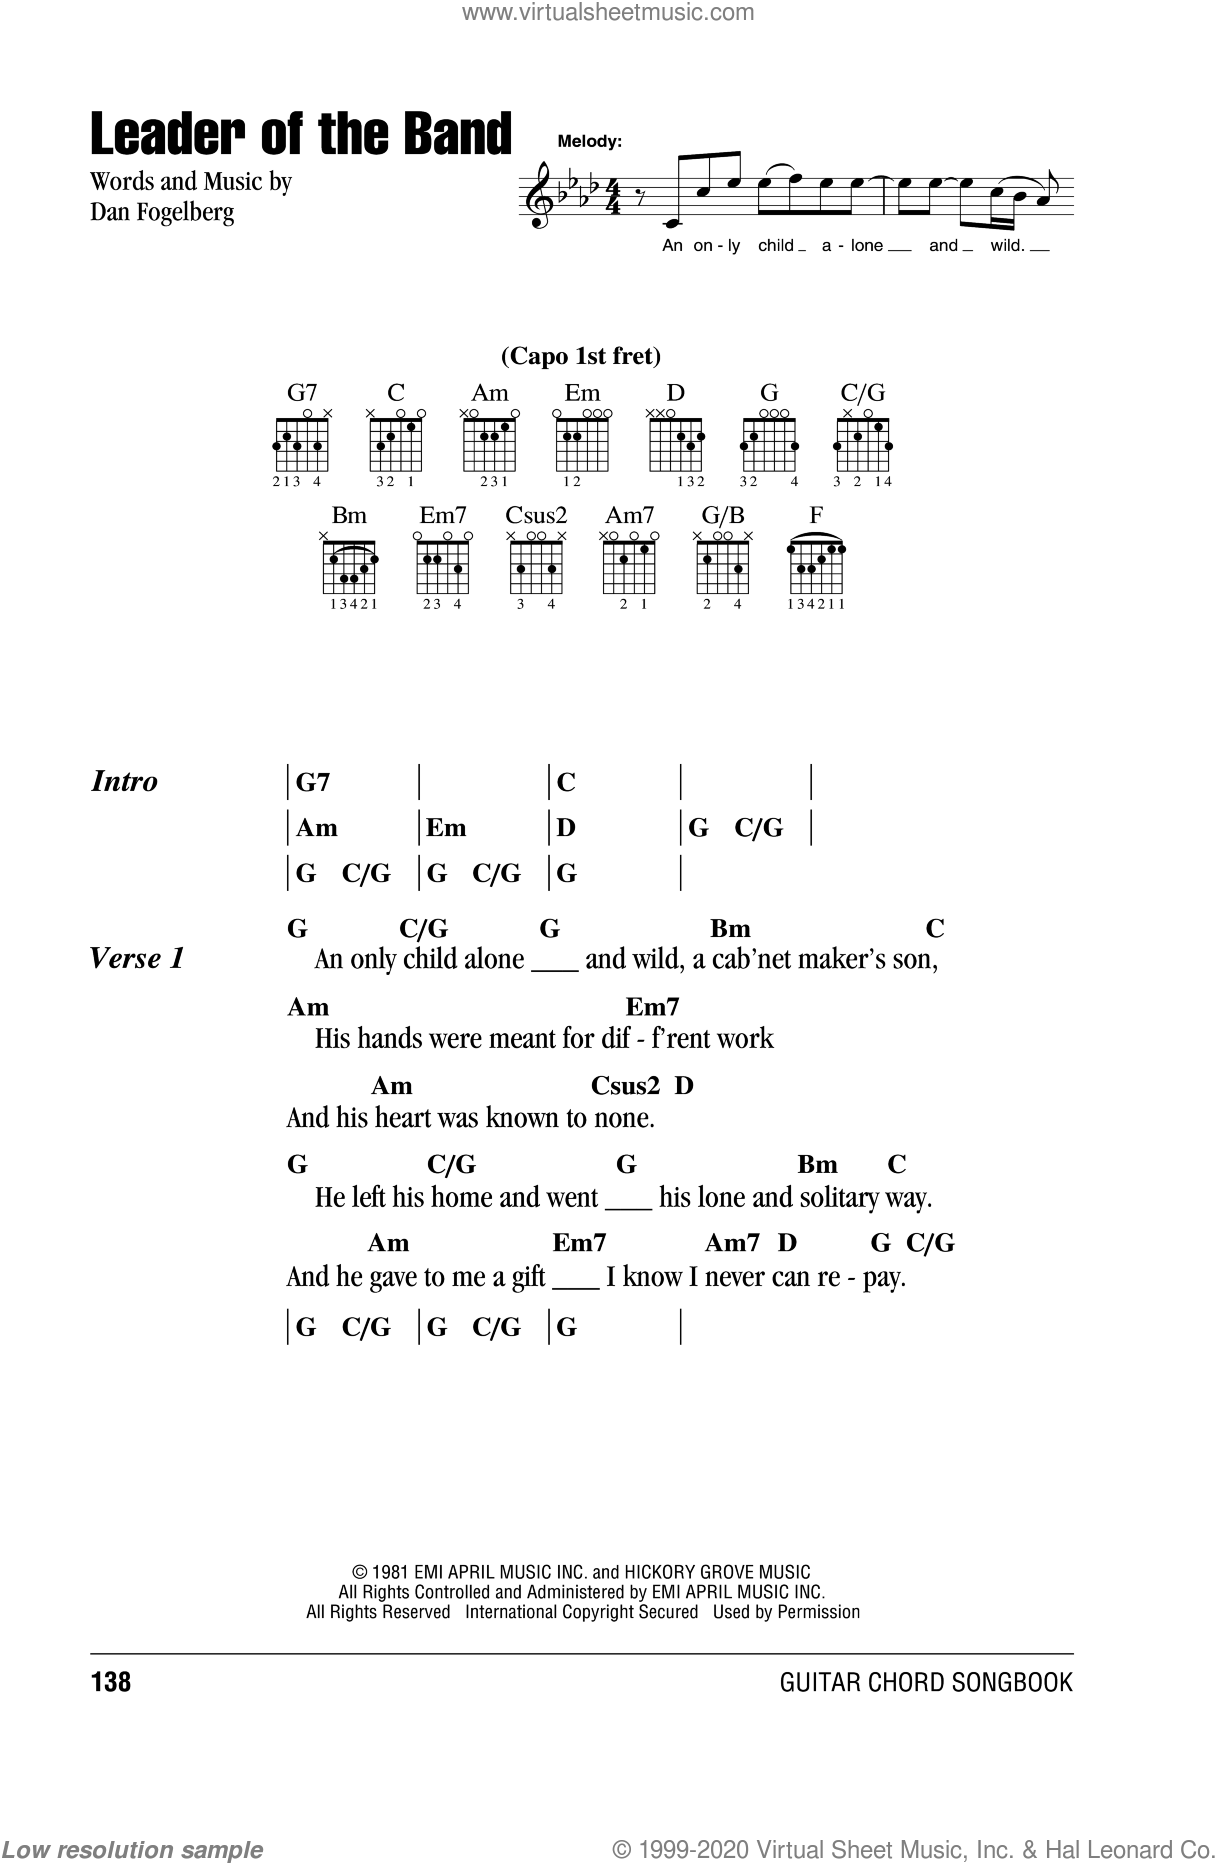 Leader Of The Band sheet music for guitar (chords) by Dan Fogelberg